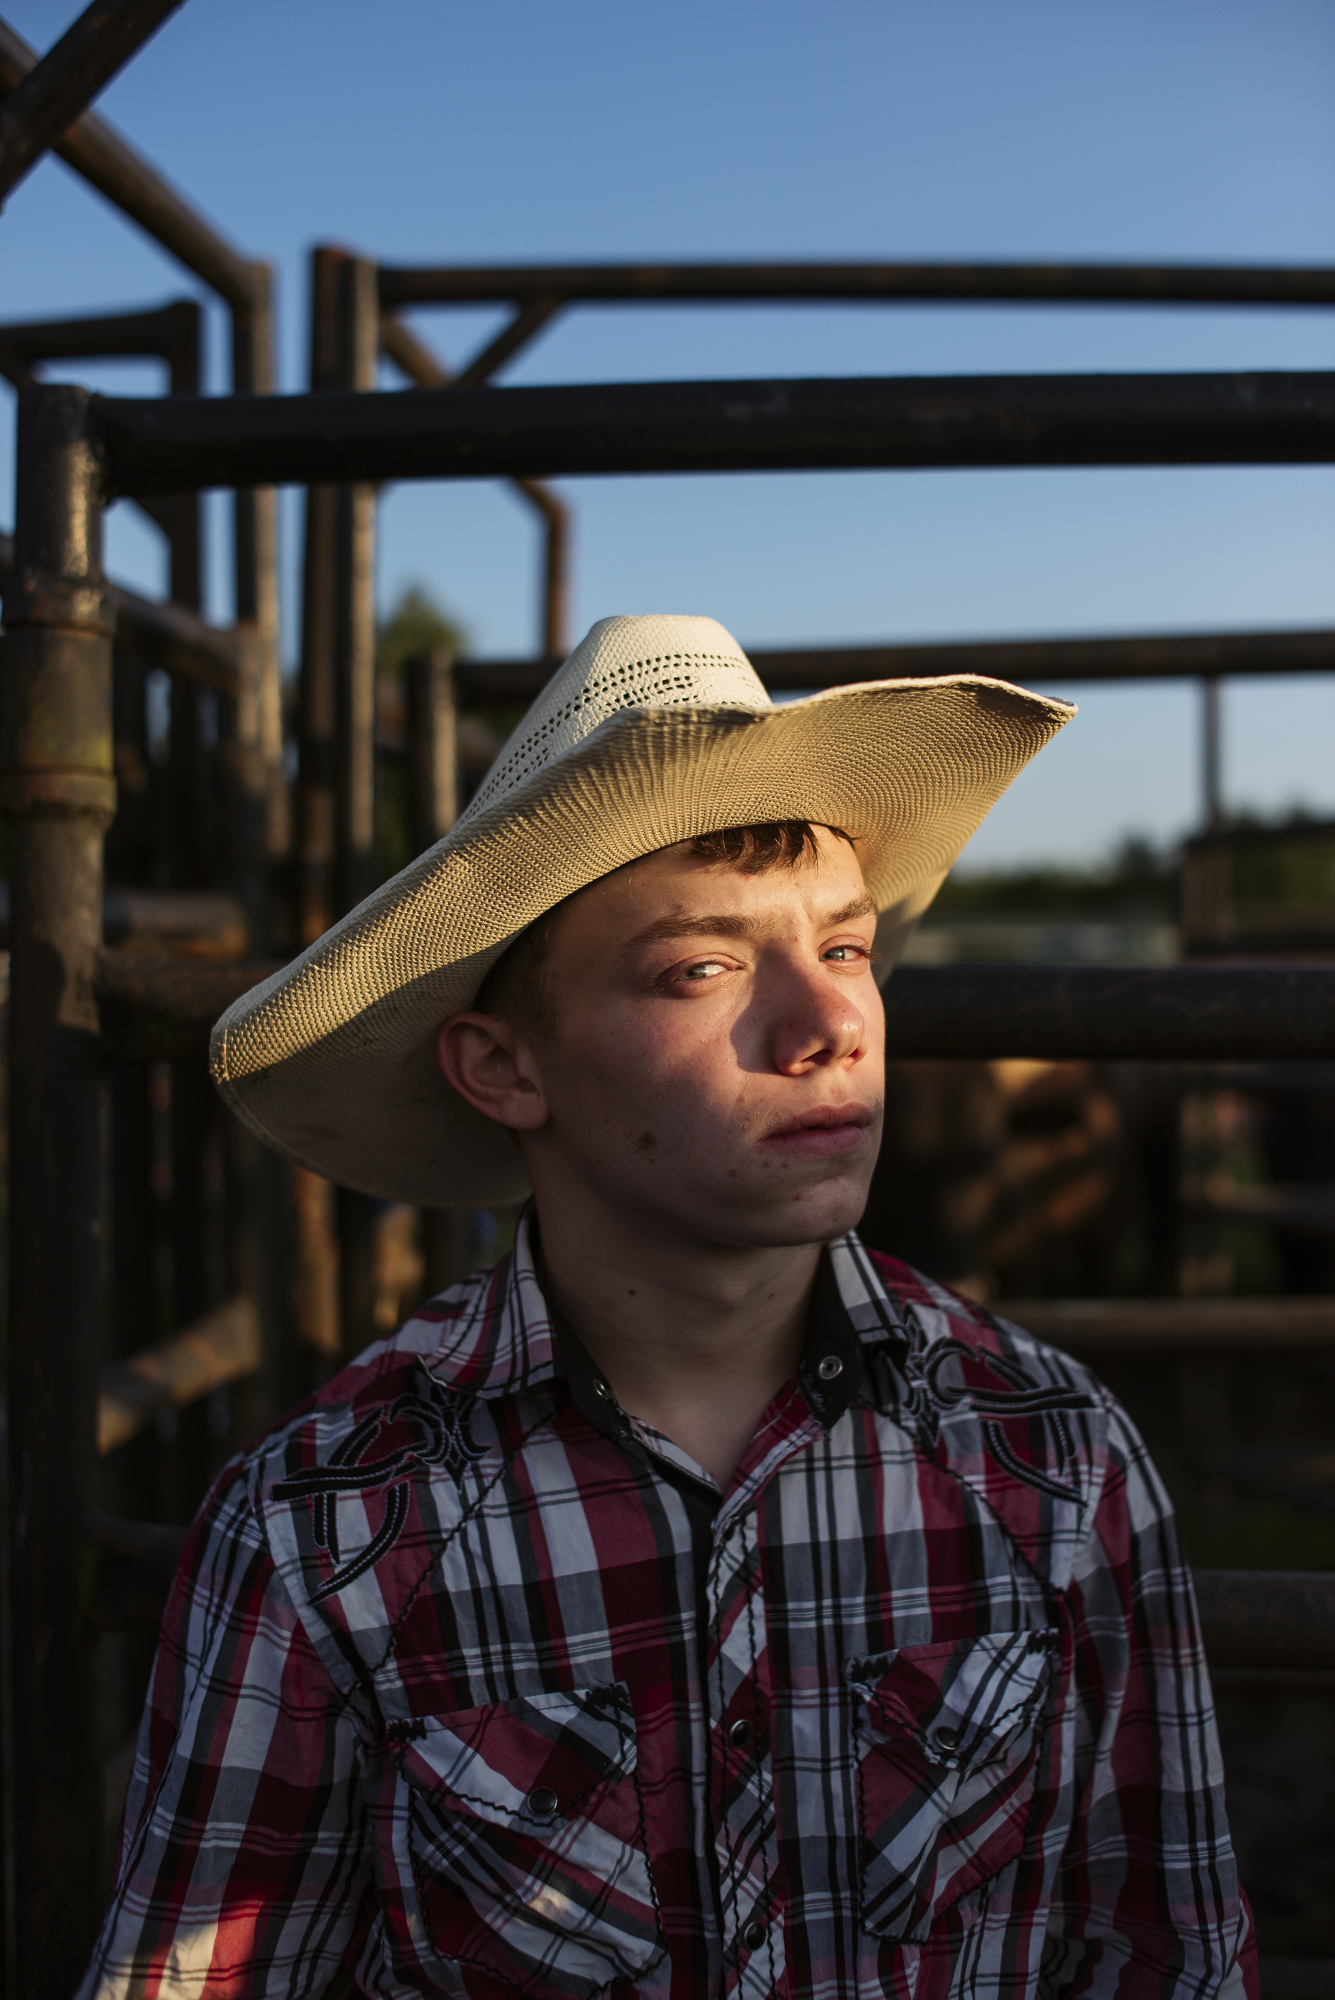 Jack Sorokin Rodeo Portrait Young Man Sunset North Carolina Photography Editorial Madison County Marshall